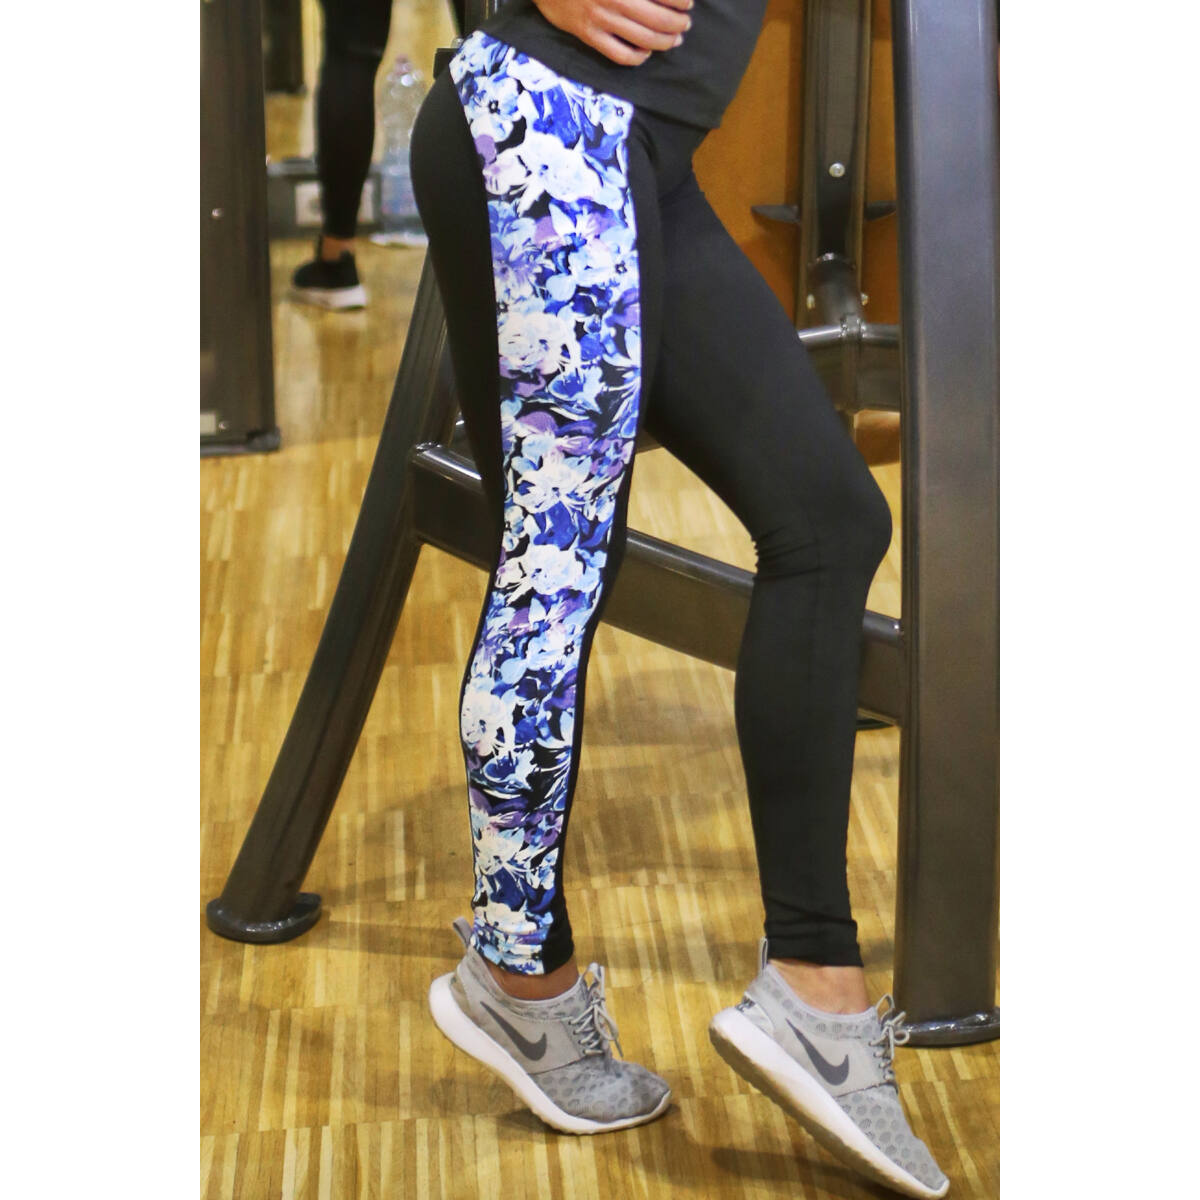 FLOWERS WAVE LEGGINGS, KÉK